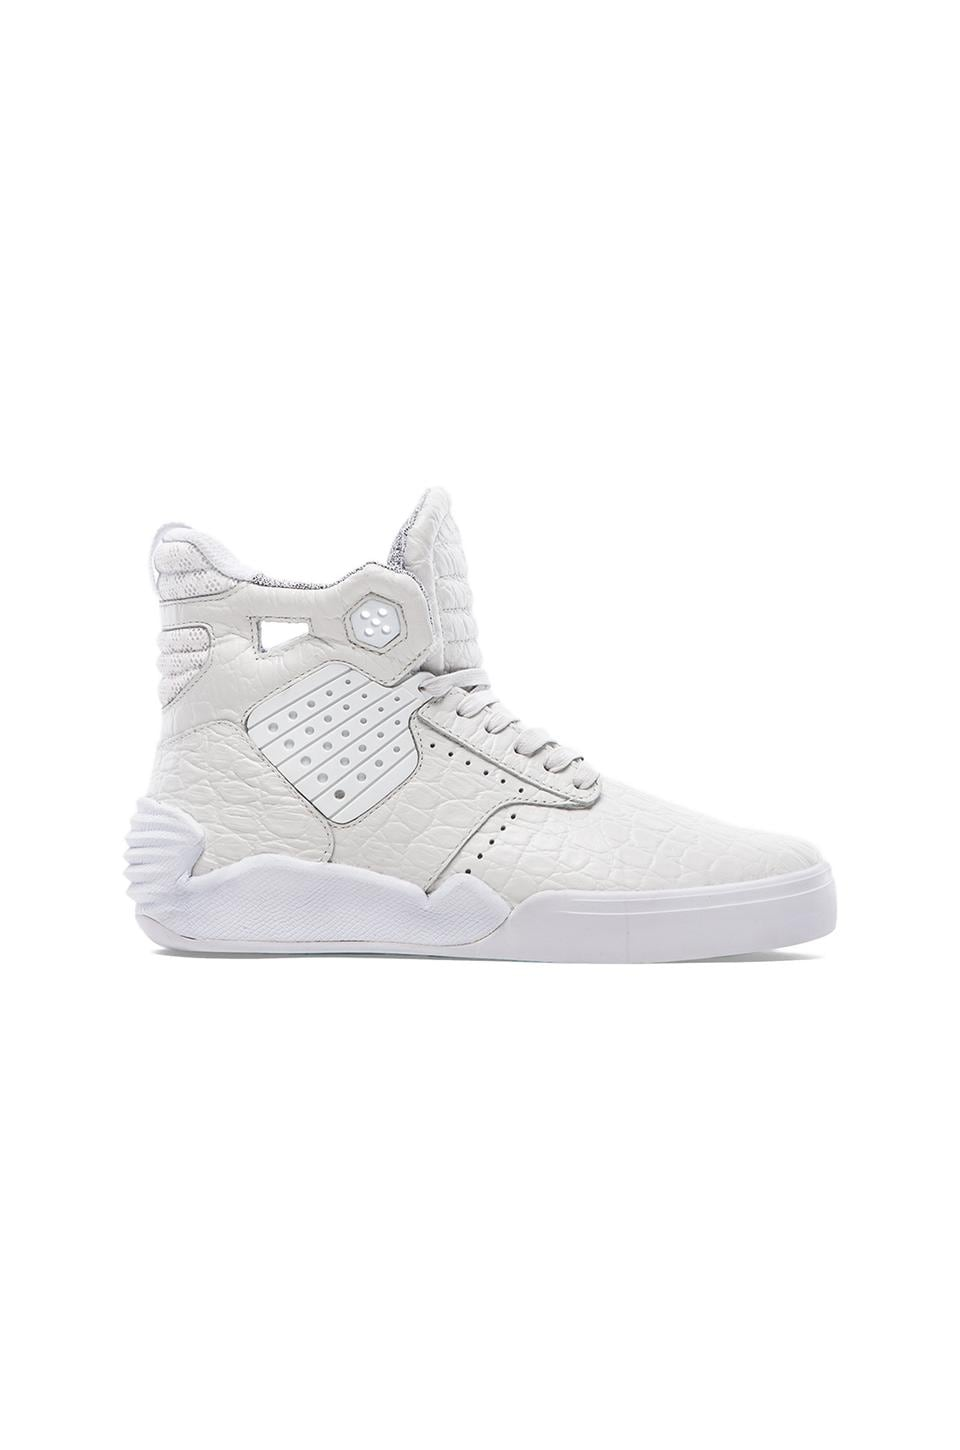 Supra Skytop IV in White